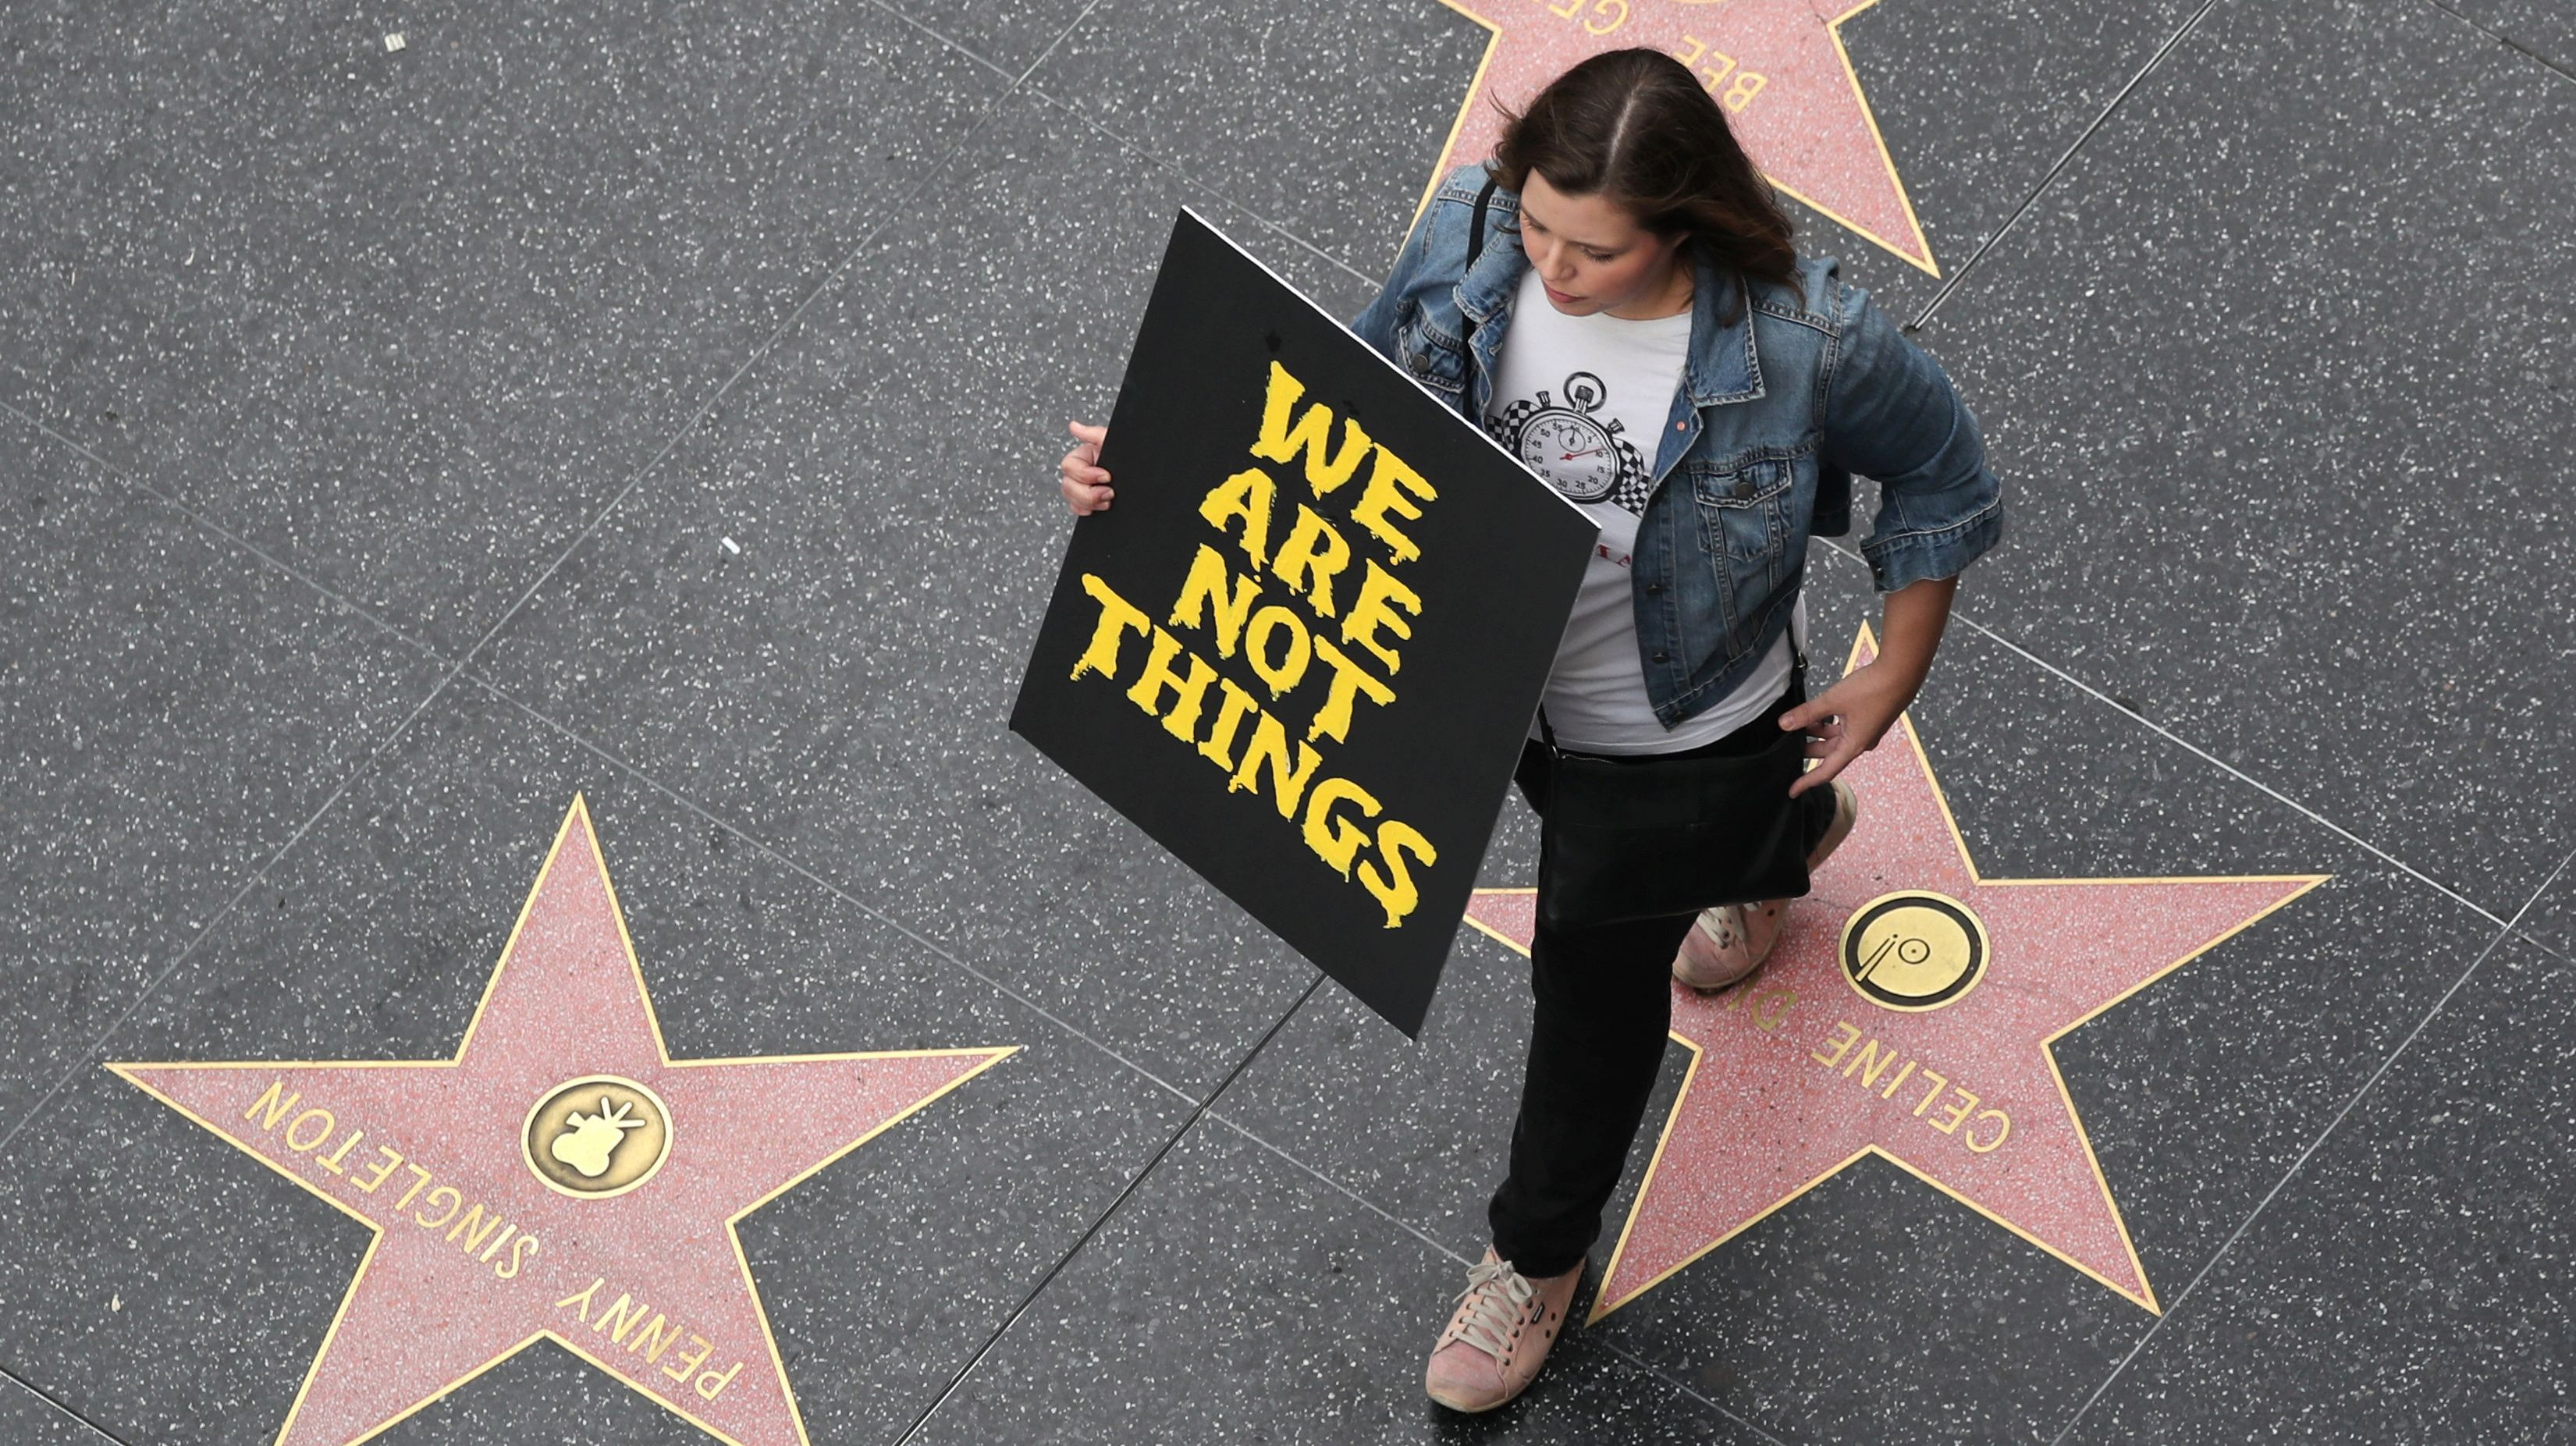 A demonstrator takes part in a #MeToo protest march for survivors of sexual assault and their supporters on the Hollywood Walk of Fame in Hollywood,